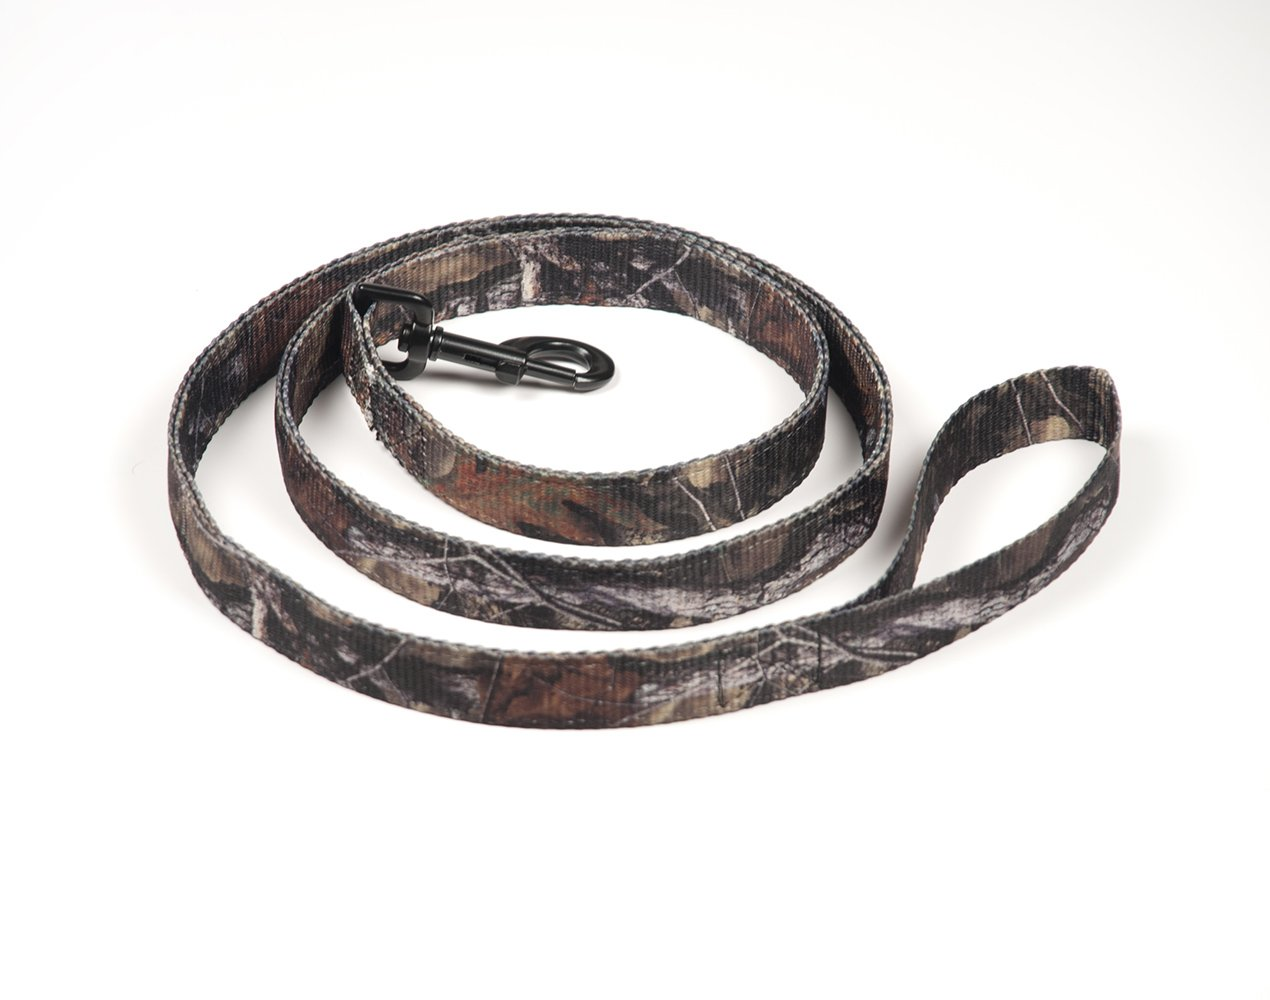 Pet Champion Hunting 5ft No Pull Easy Lead Dog Leash, Mossy Oak Camo, Large 1in x 5ft